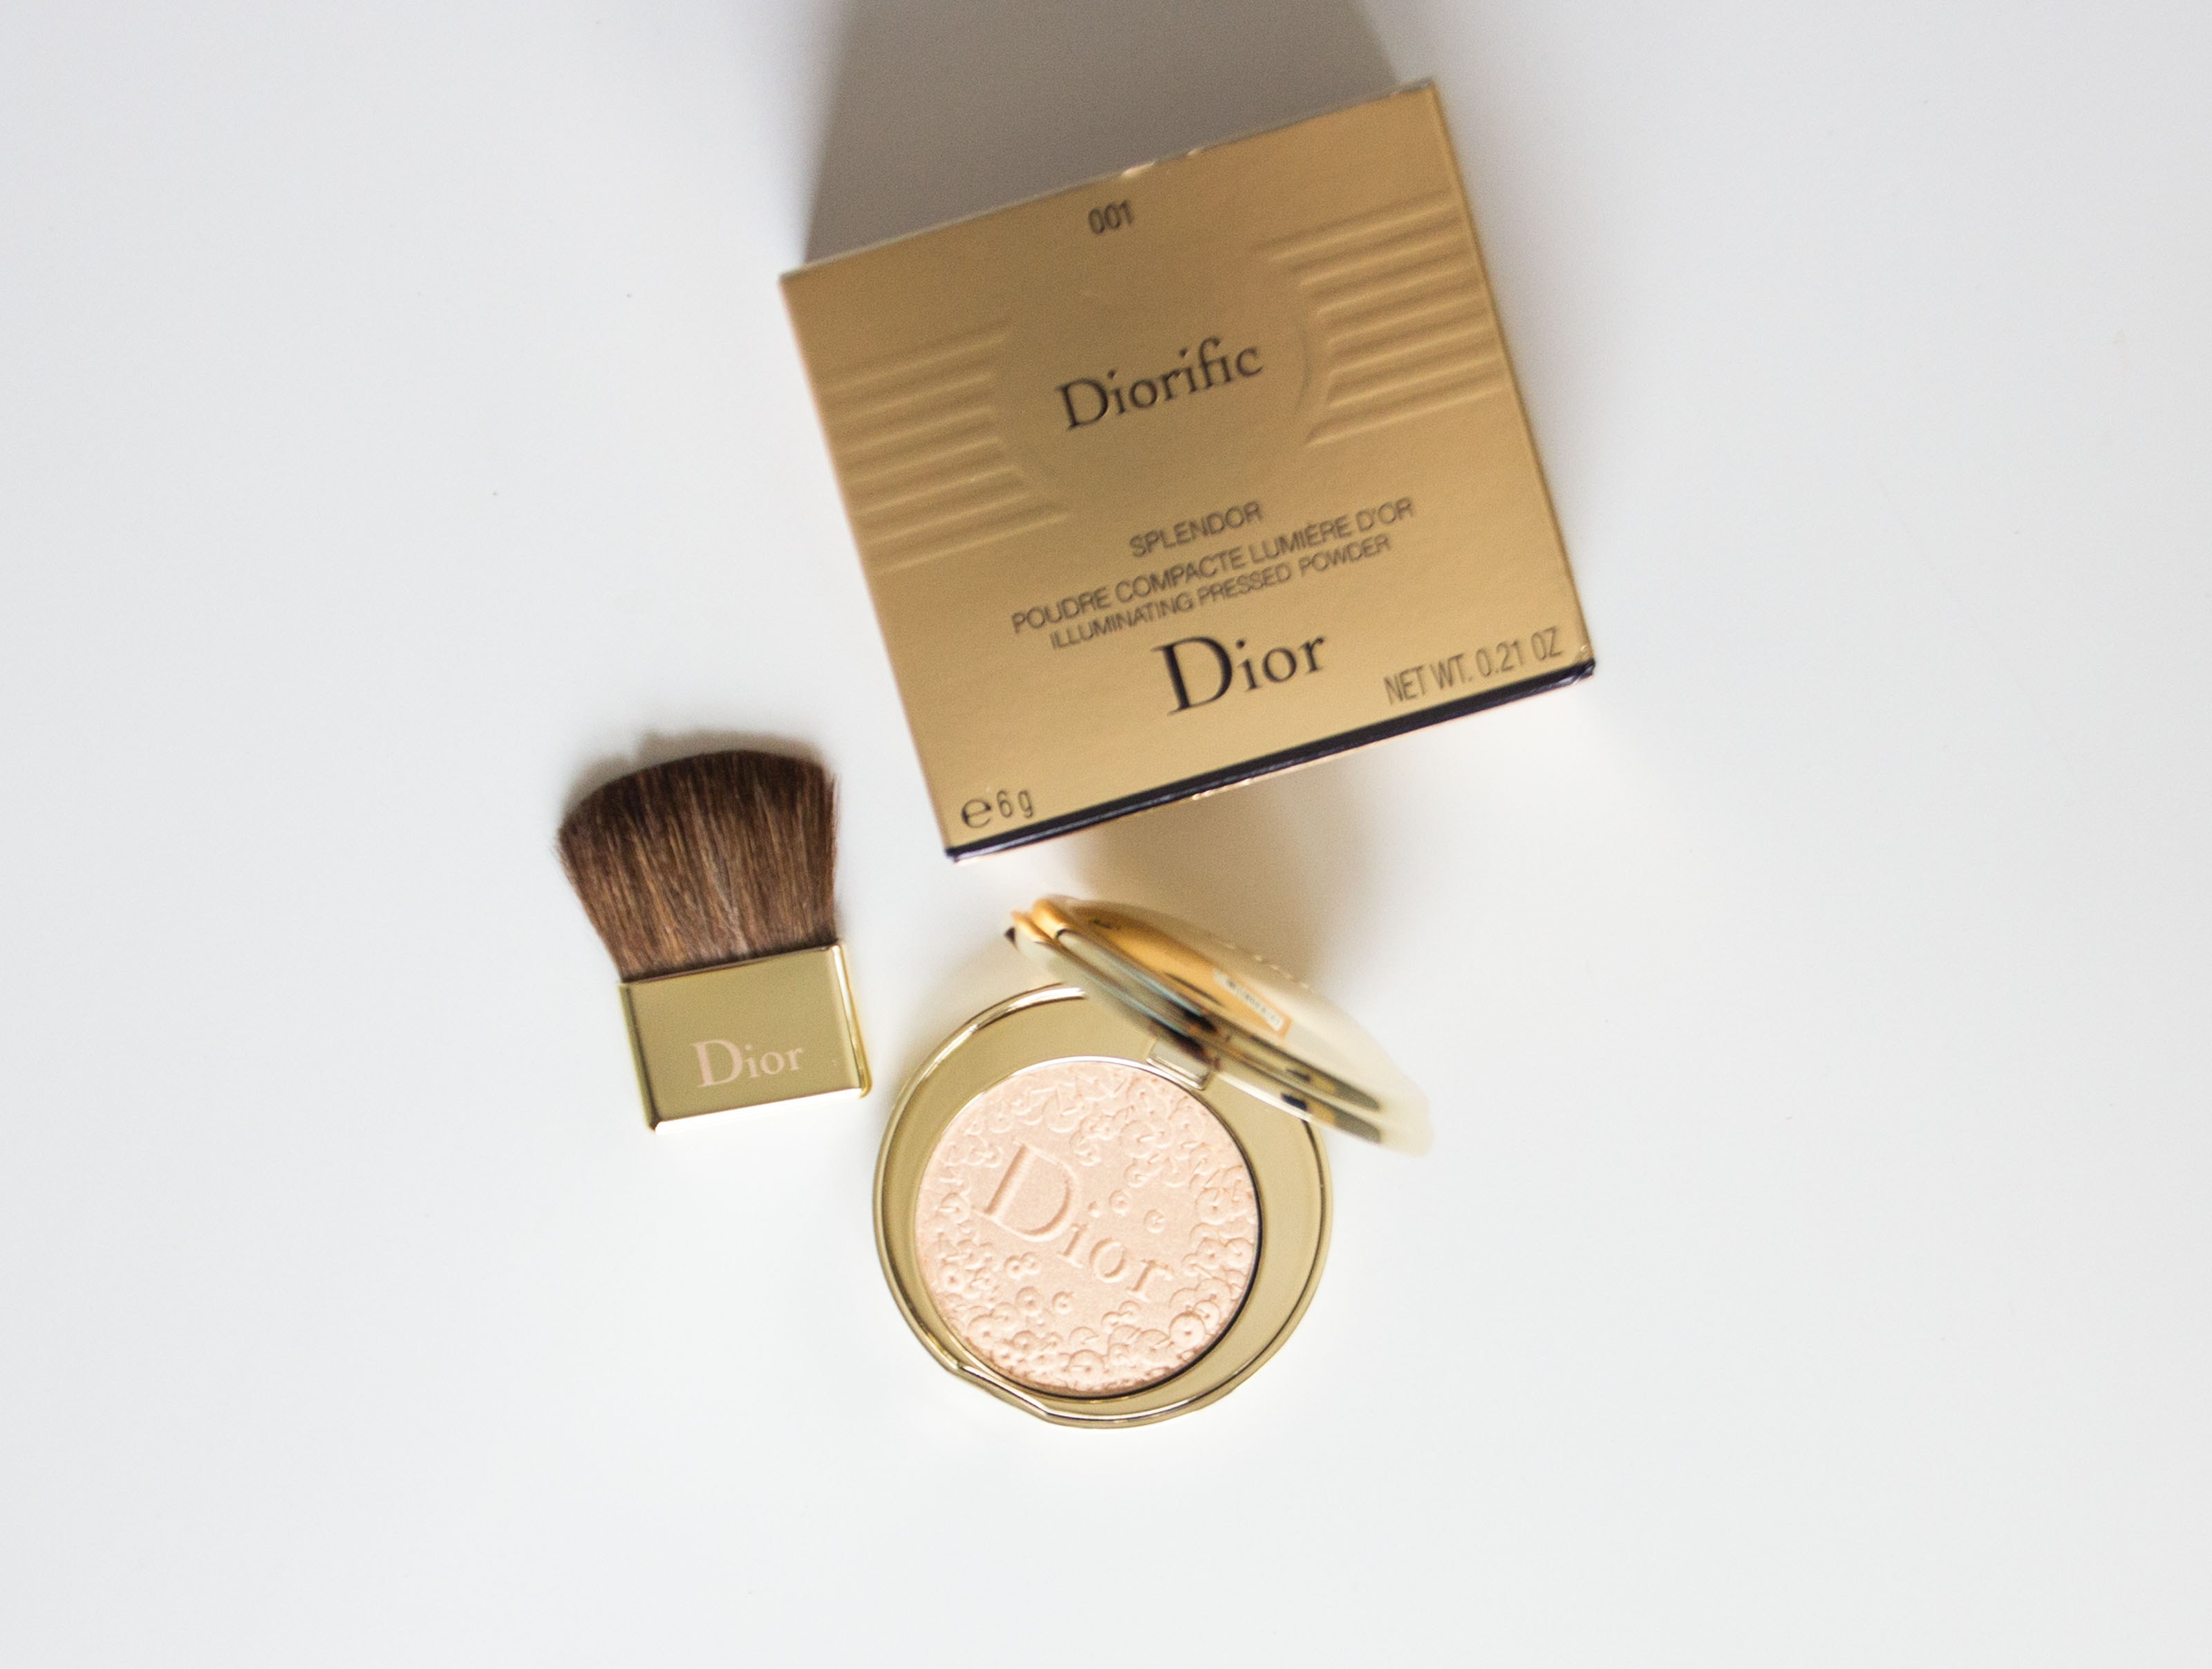 Dior Splendor - Illuminating Pressed Powder